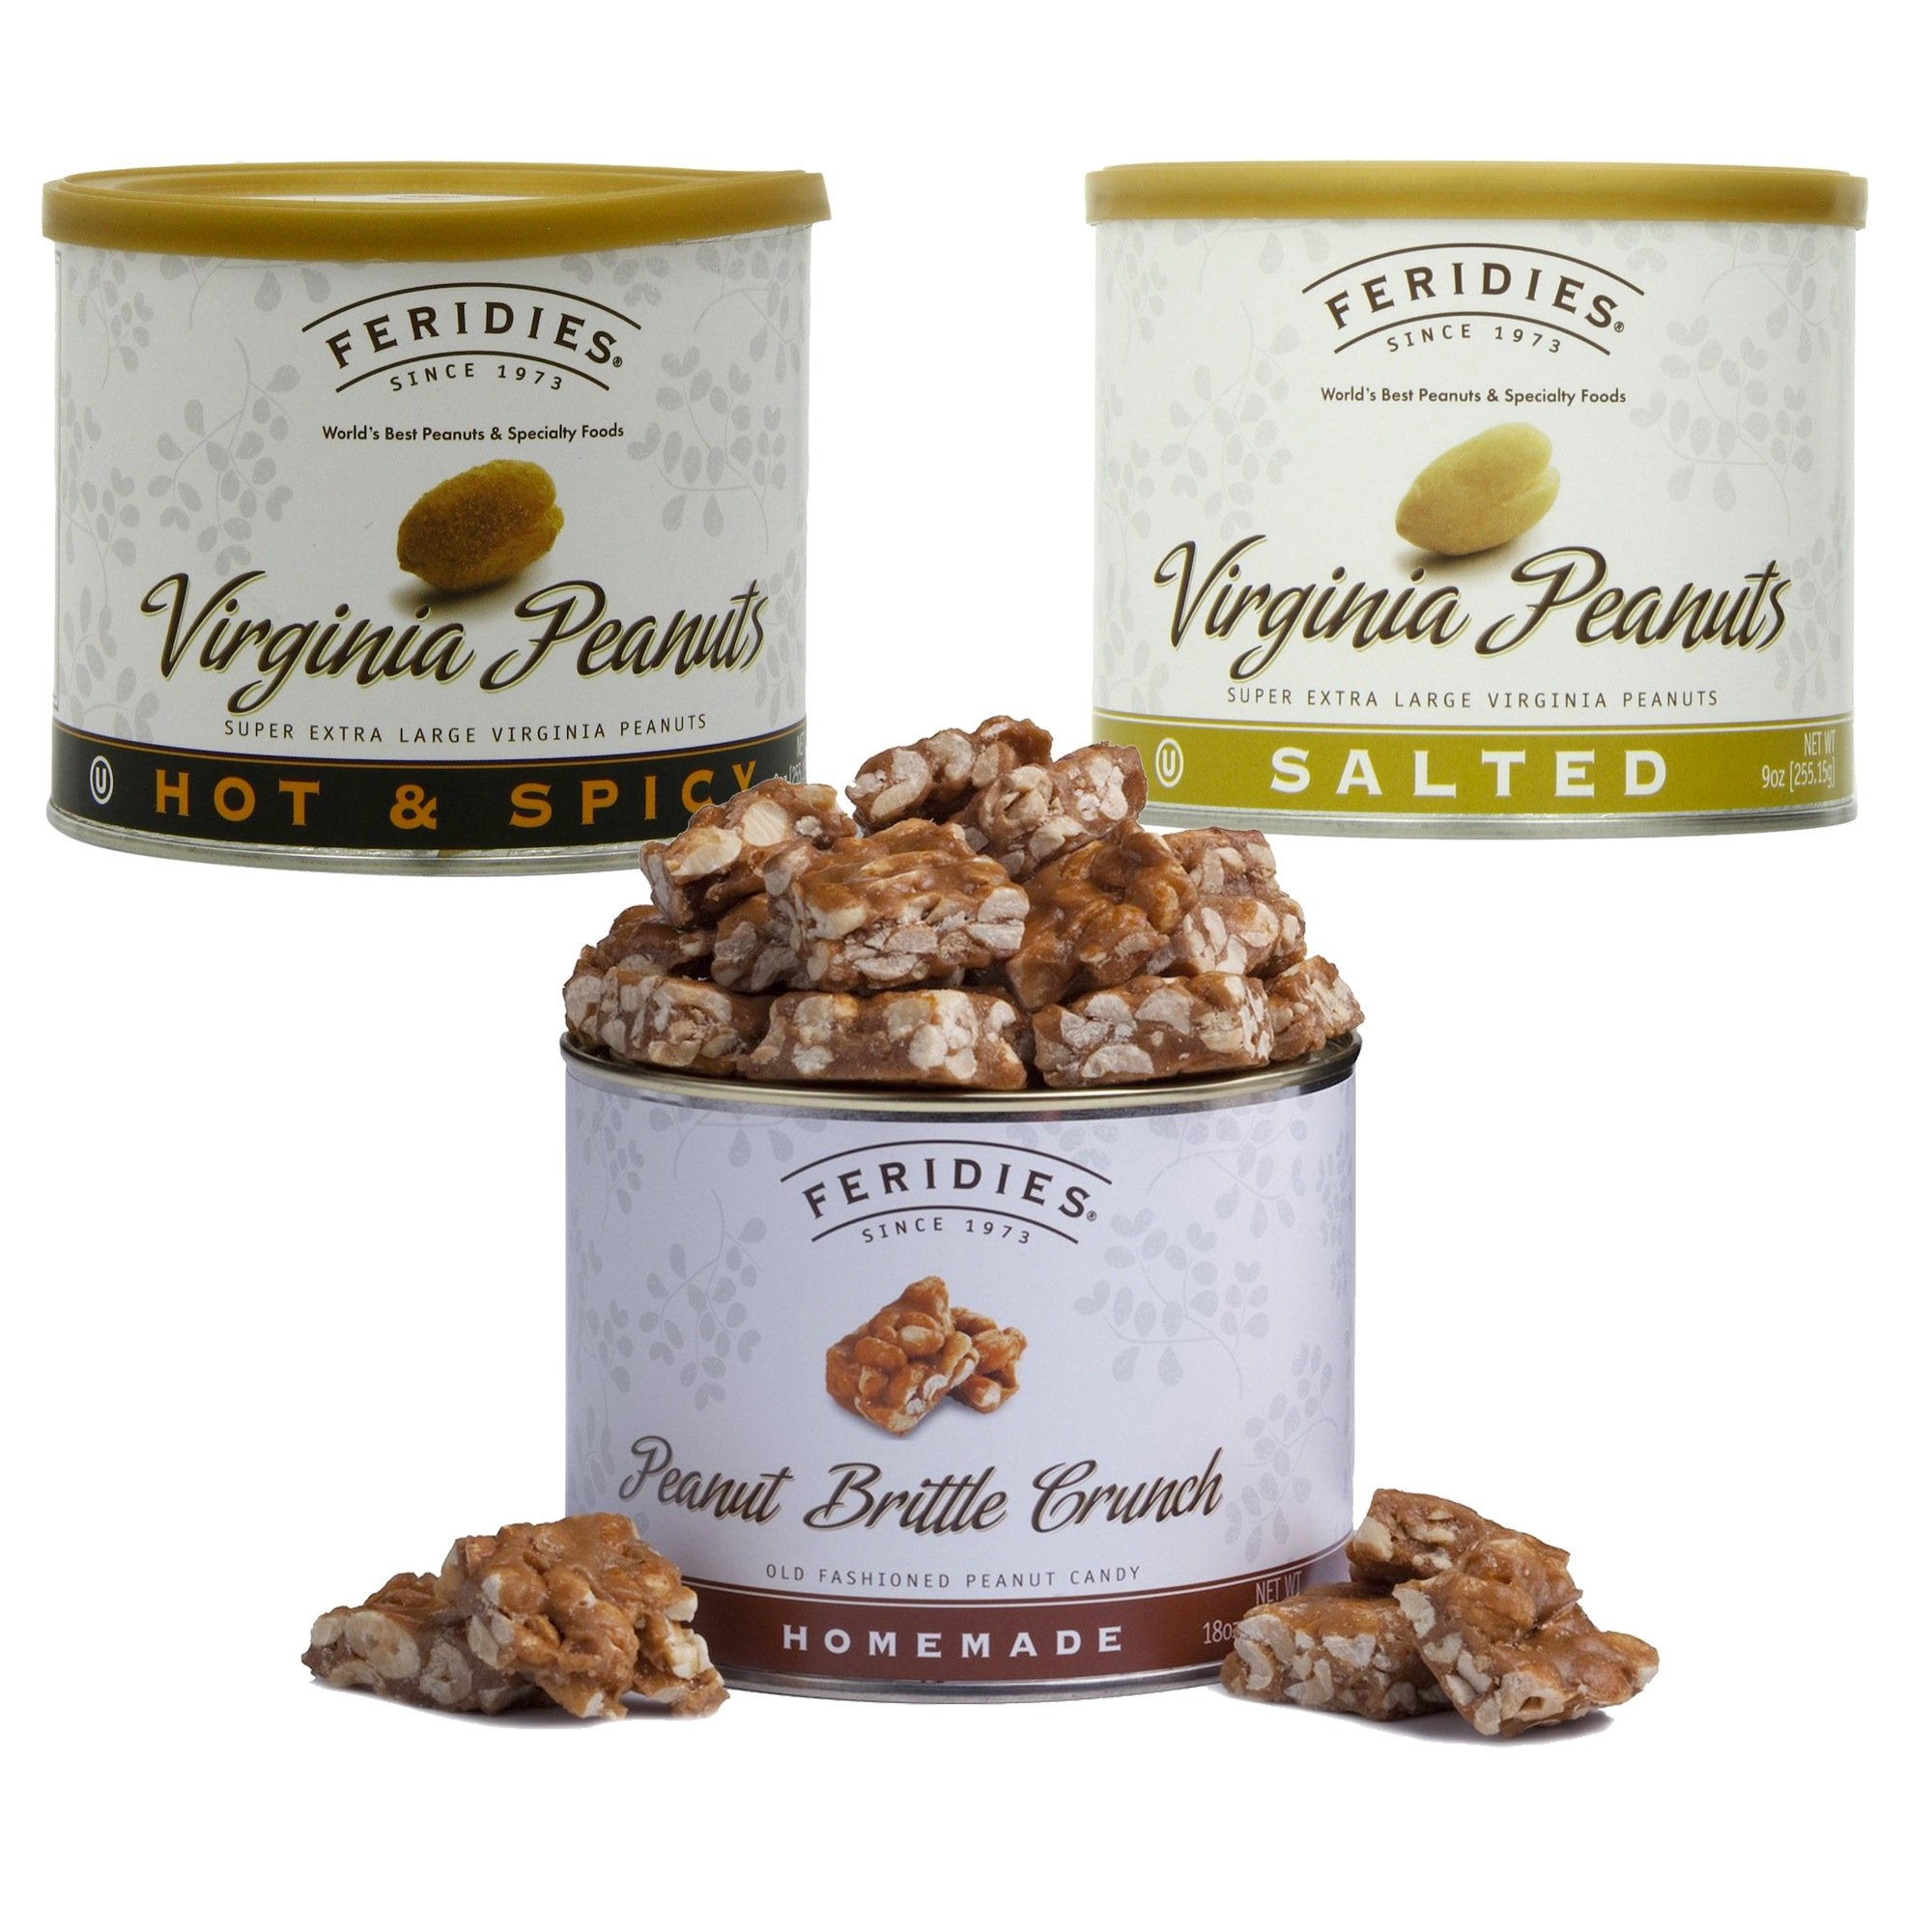 3-pack Variety Set of Extra Large Salted Virginia Peanuts, Hot & Spicy Peanuts and Feridies Famous Peanut Brittle